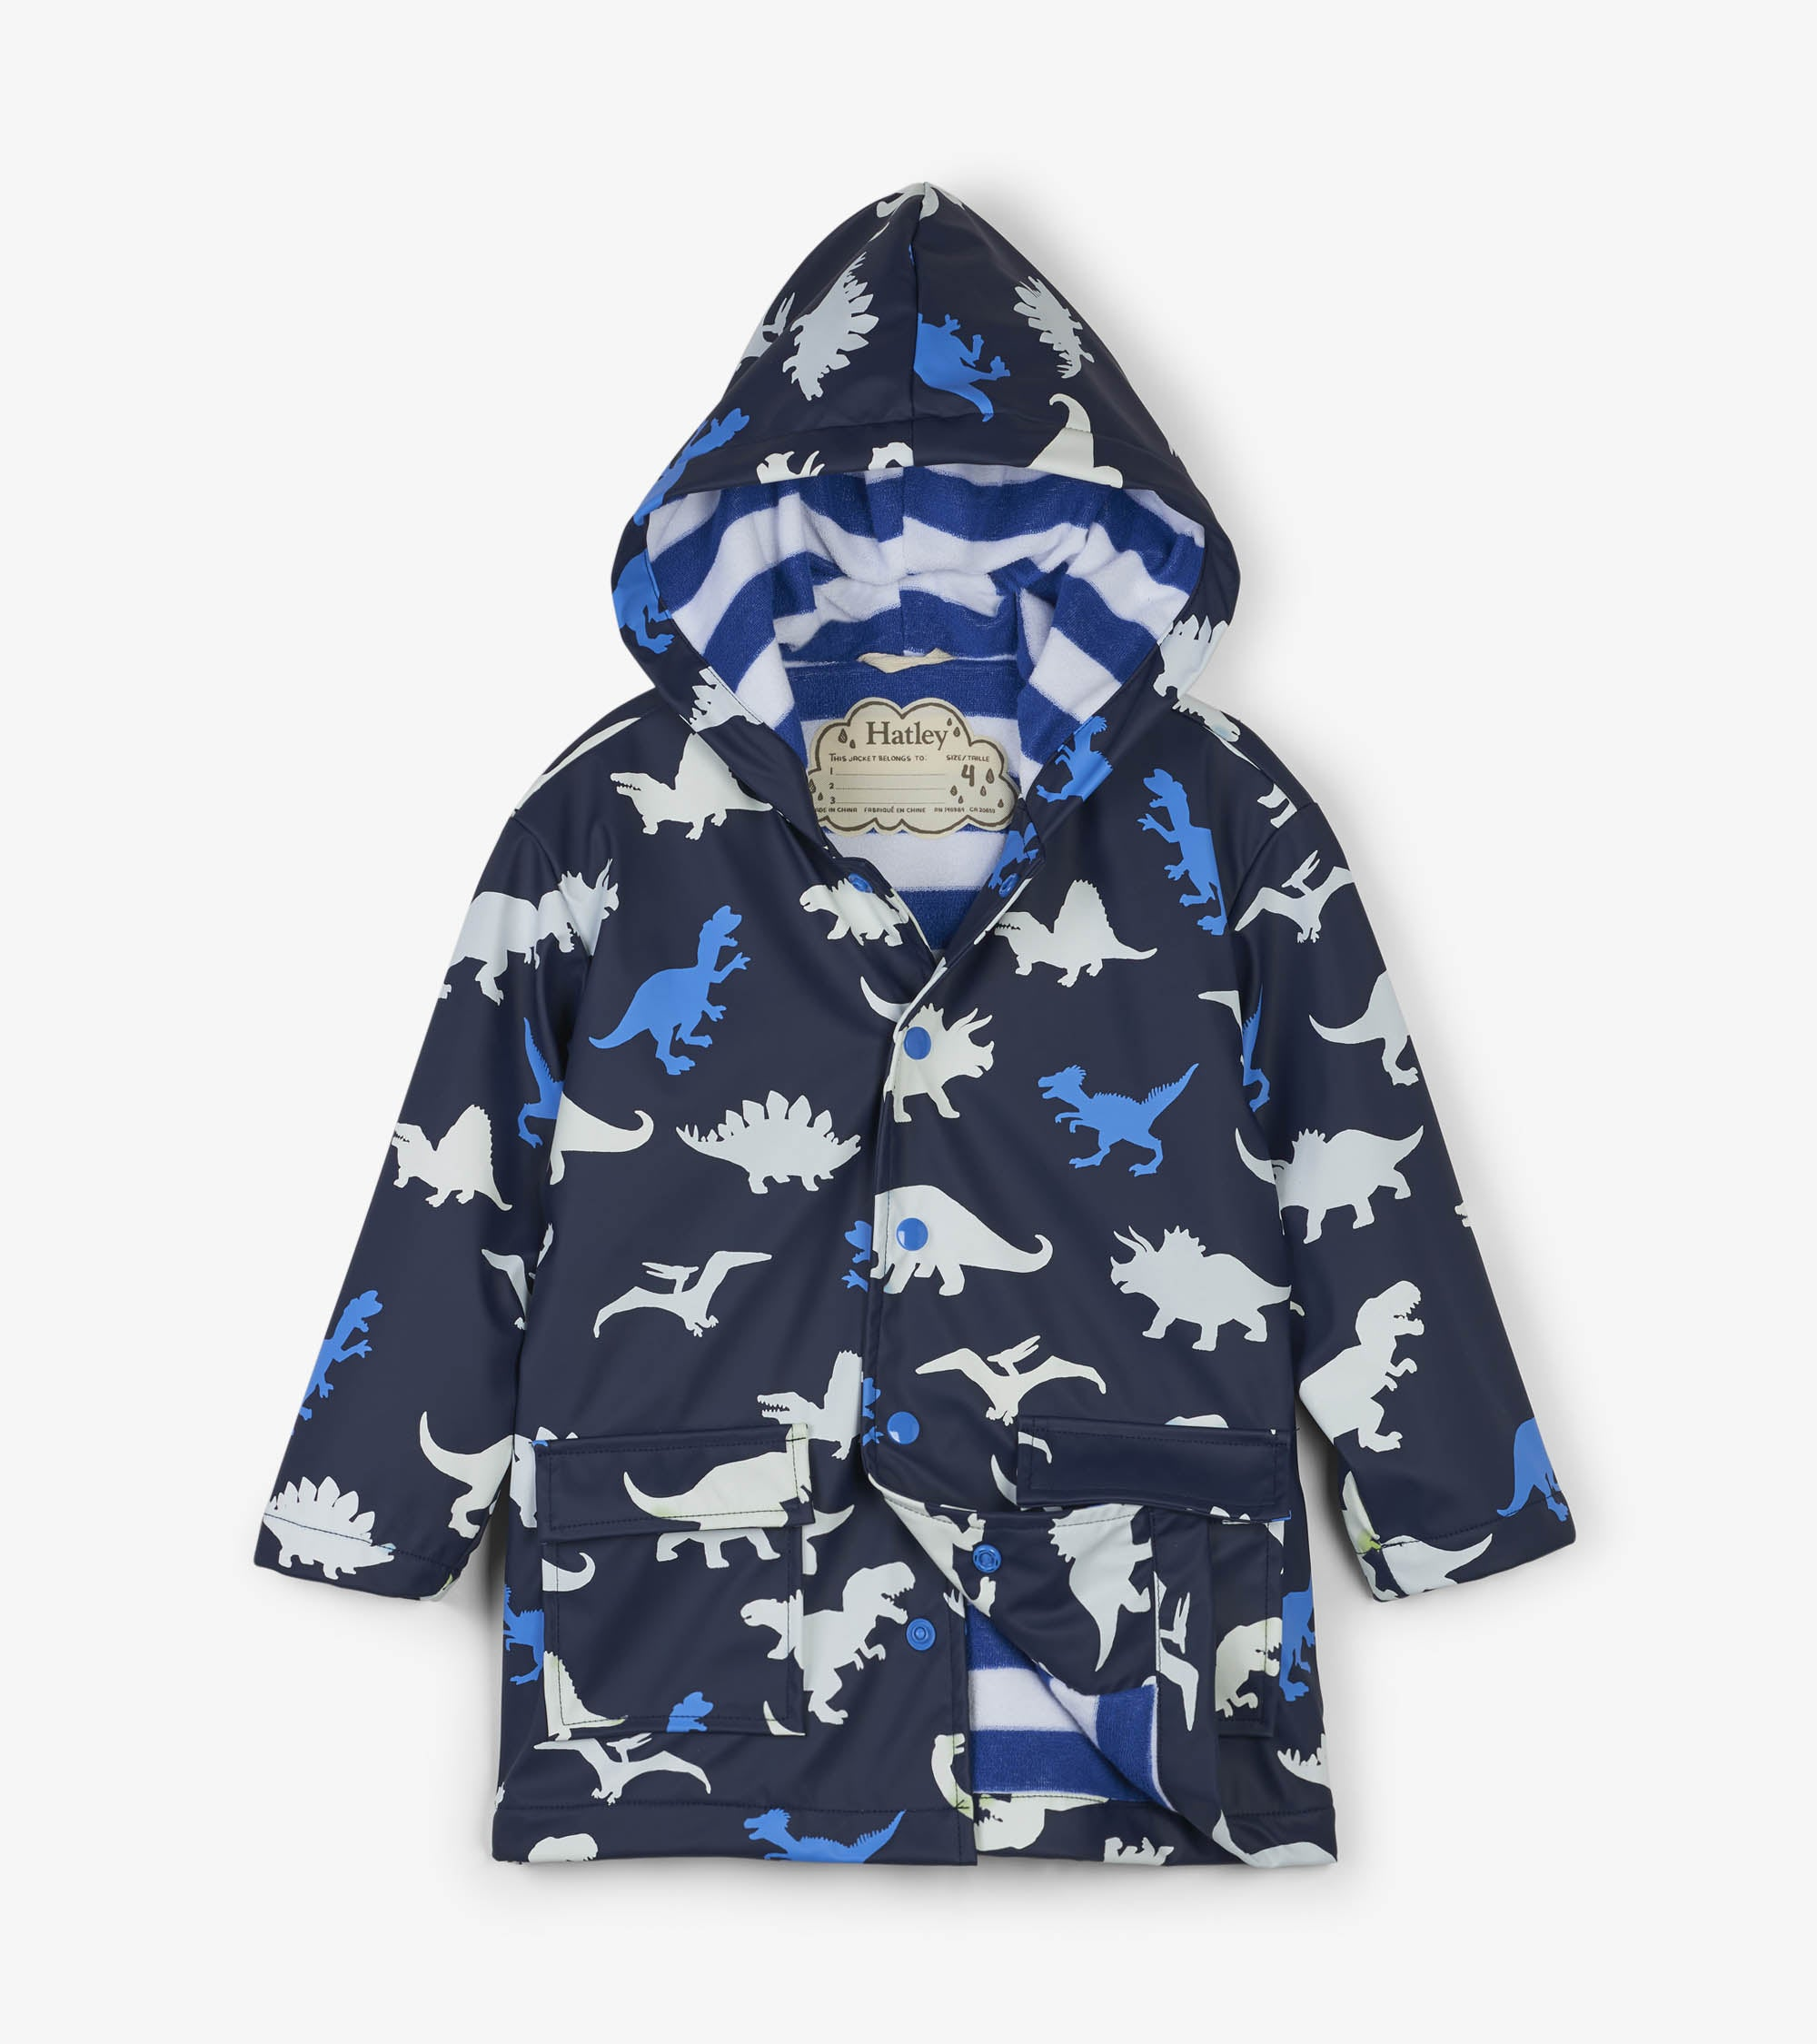 Hatley Dinosaur Color Changing Raincoat